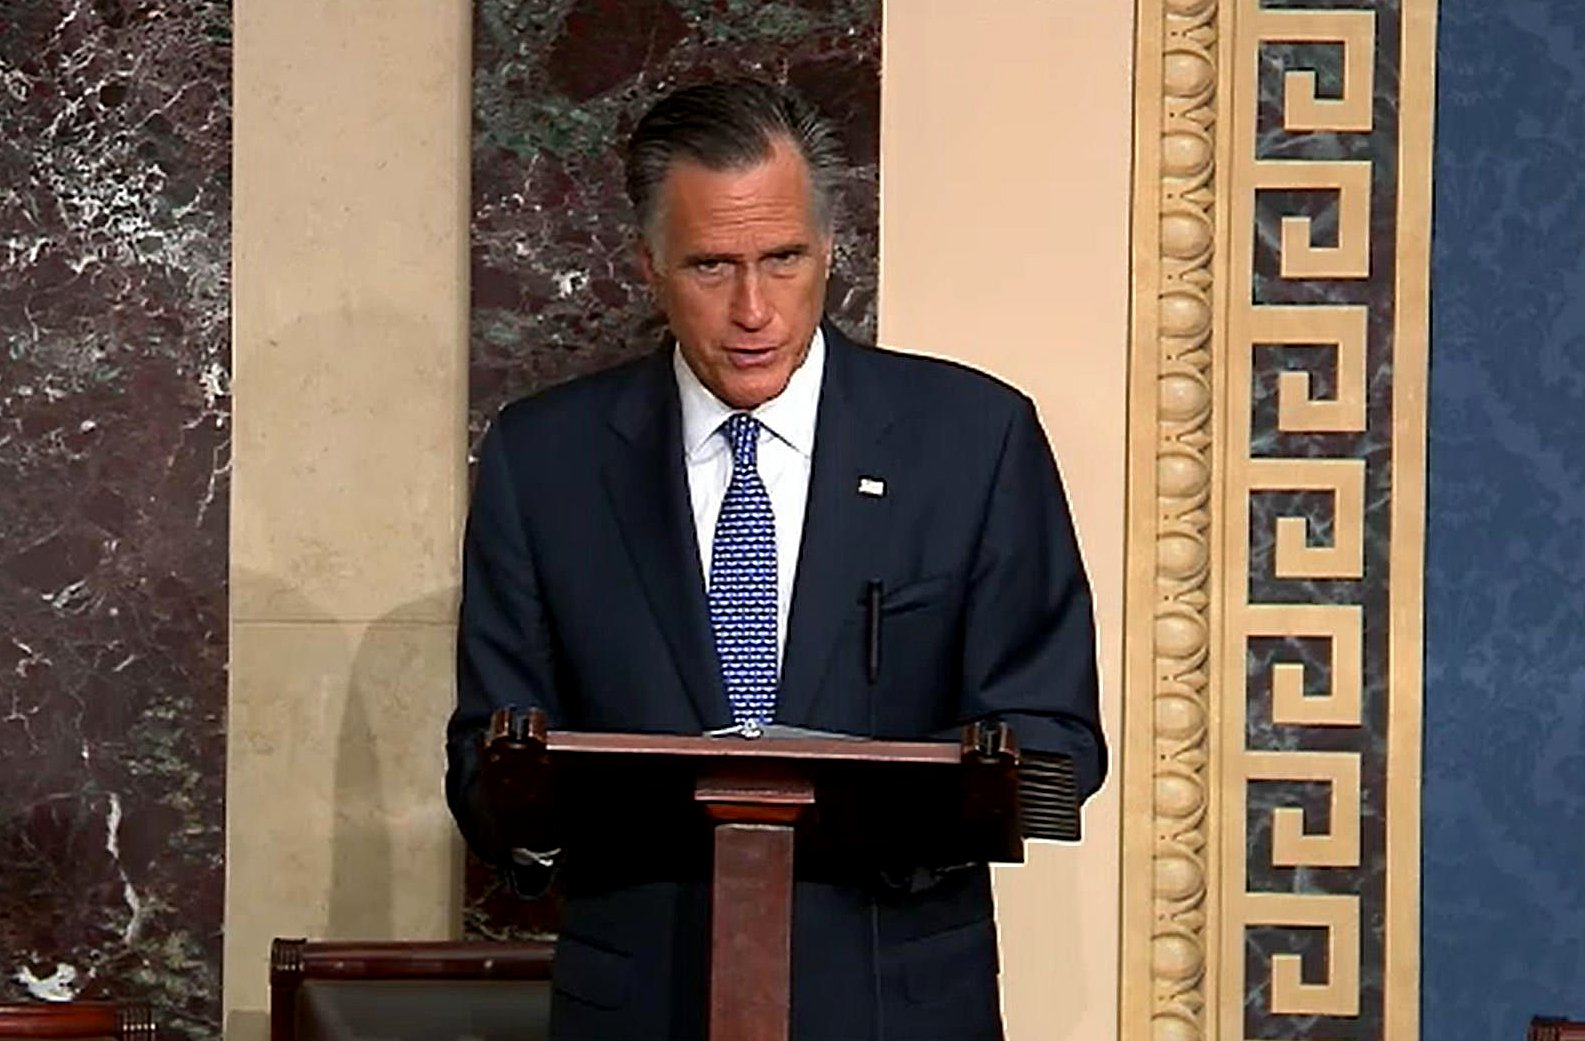 In this screengrab taken from a Senate Television webcast, Sen. Mitt Romney (R-UT) talks at the U.S. Capitol on February 5, 2020 in Washington, DC. (Credit: Senate Television via Getty Images)